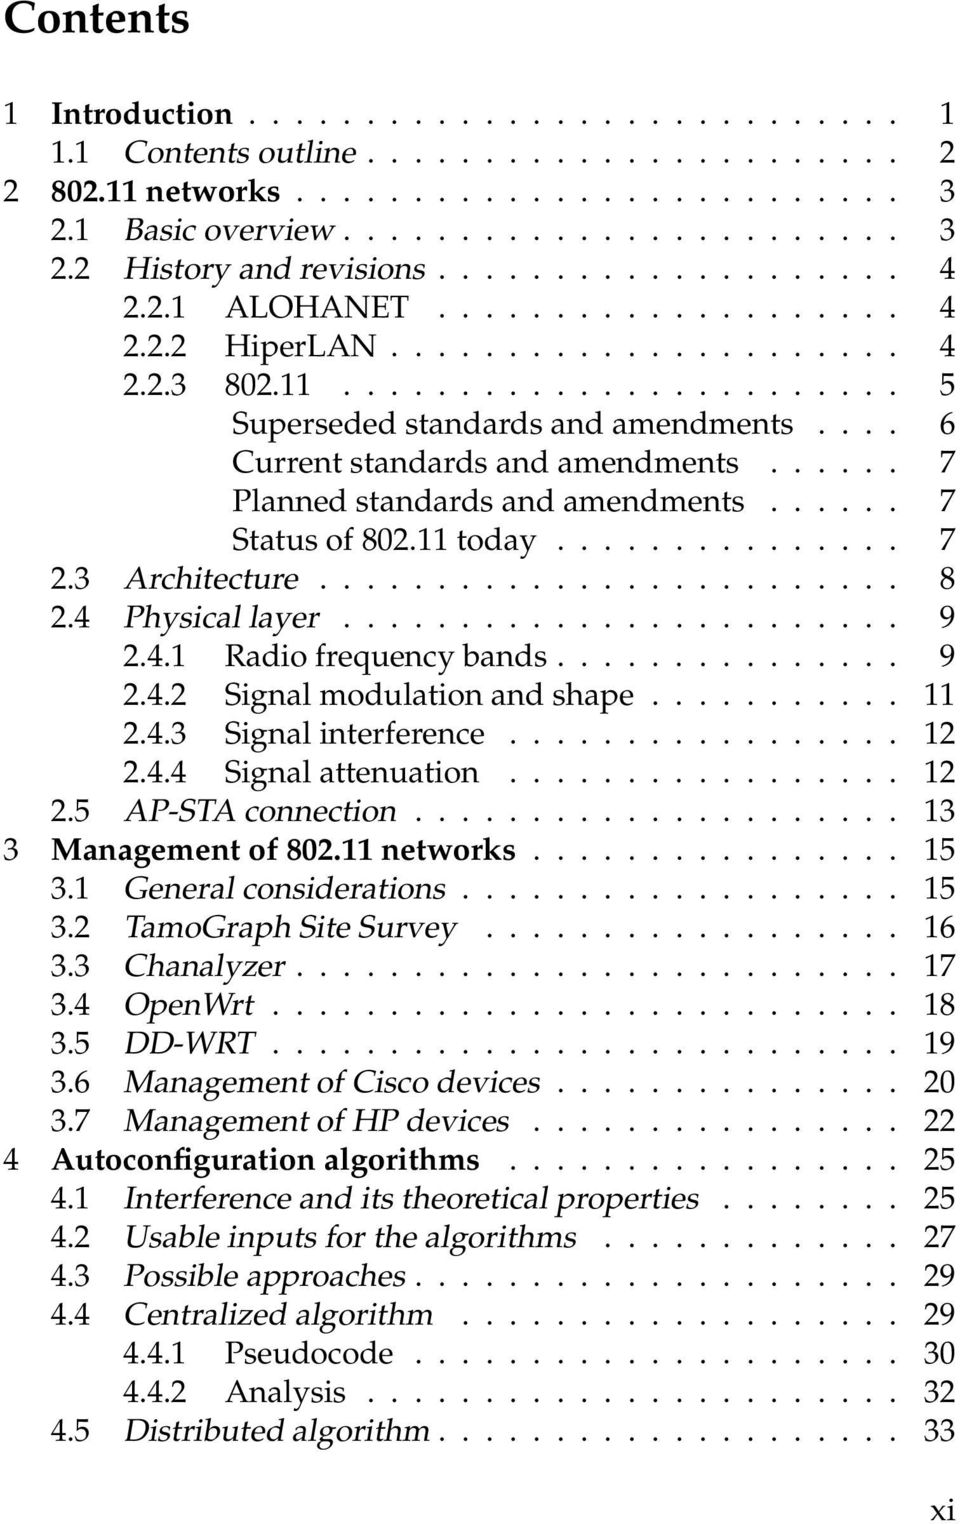 ... 6 Current standards and amendments...... 7 Planned standards and amendments...... 7 Status of 802.11 today............... 7 2.3 Architecture......................... 8 2.4 Physical layer........................ 9 2.